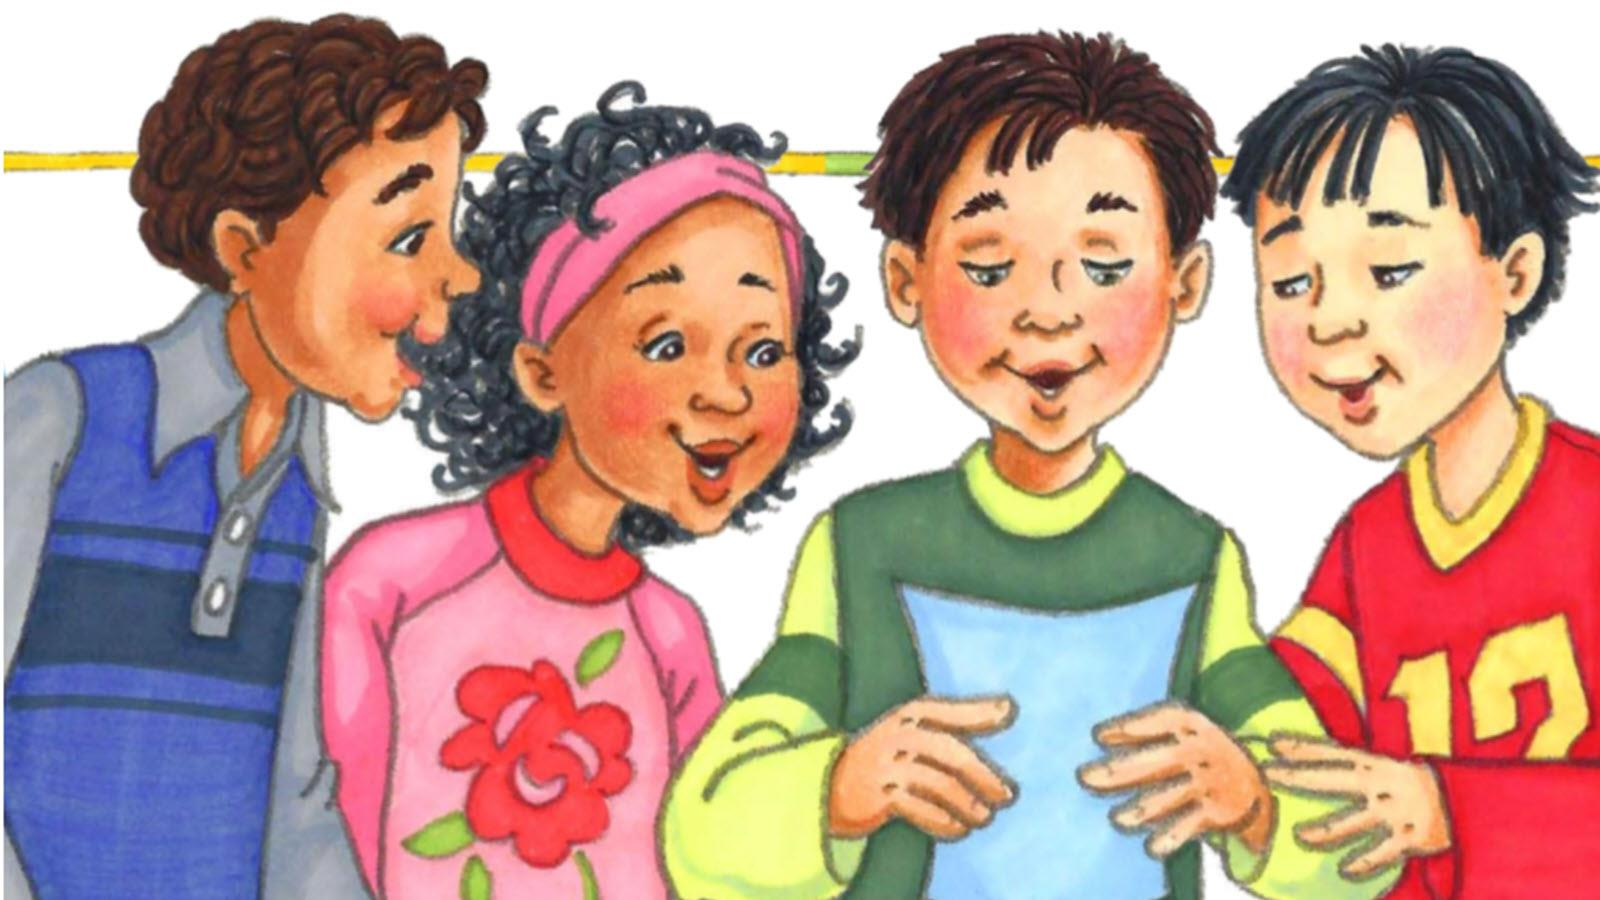 Illustration of four children from the Nico book series about HAE